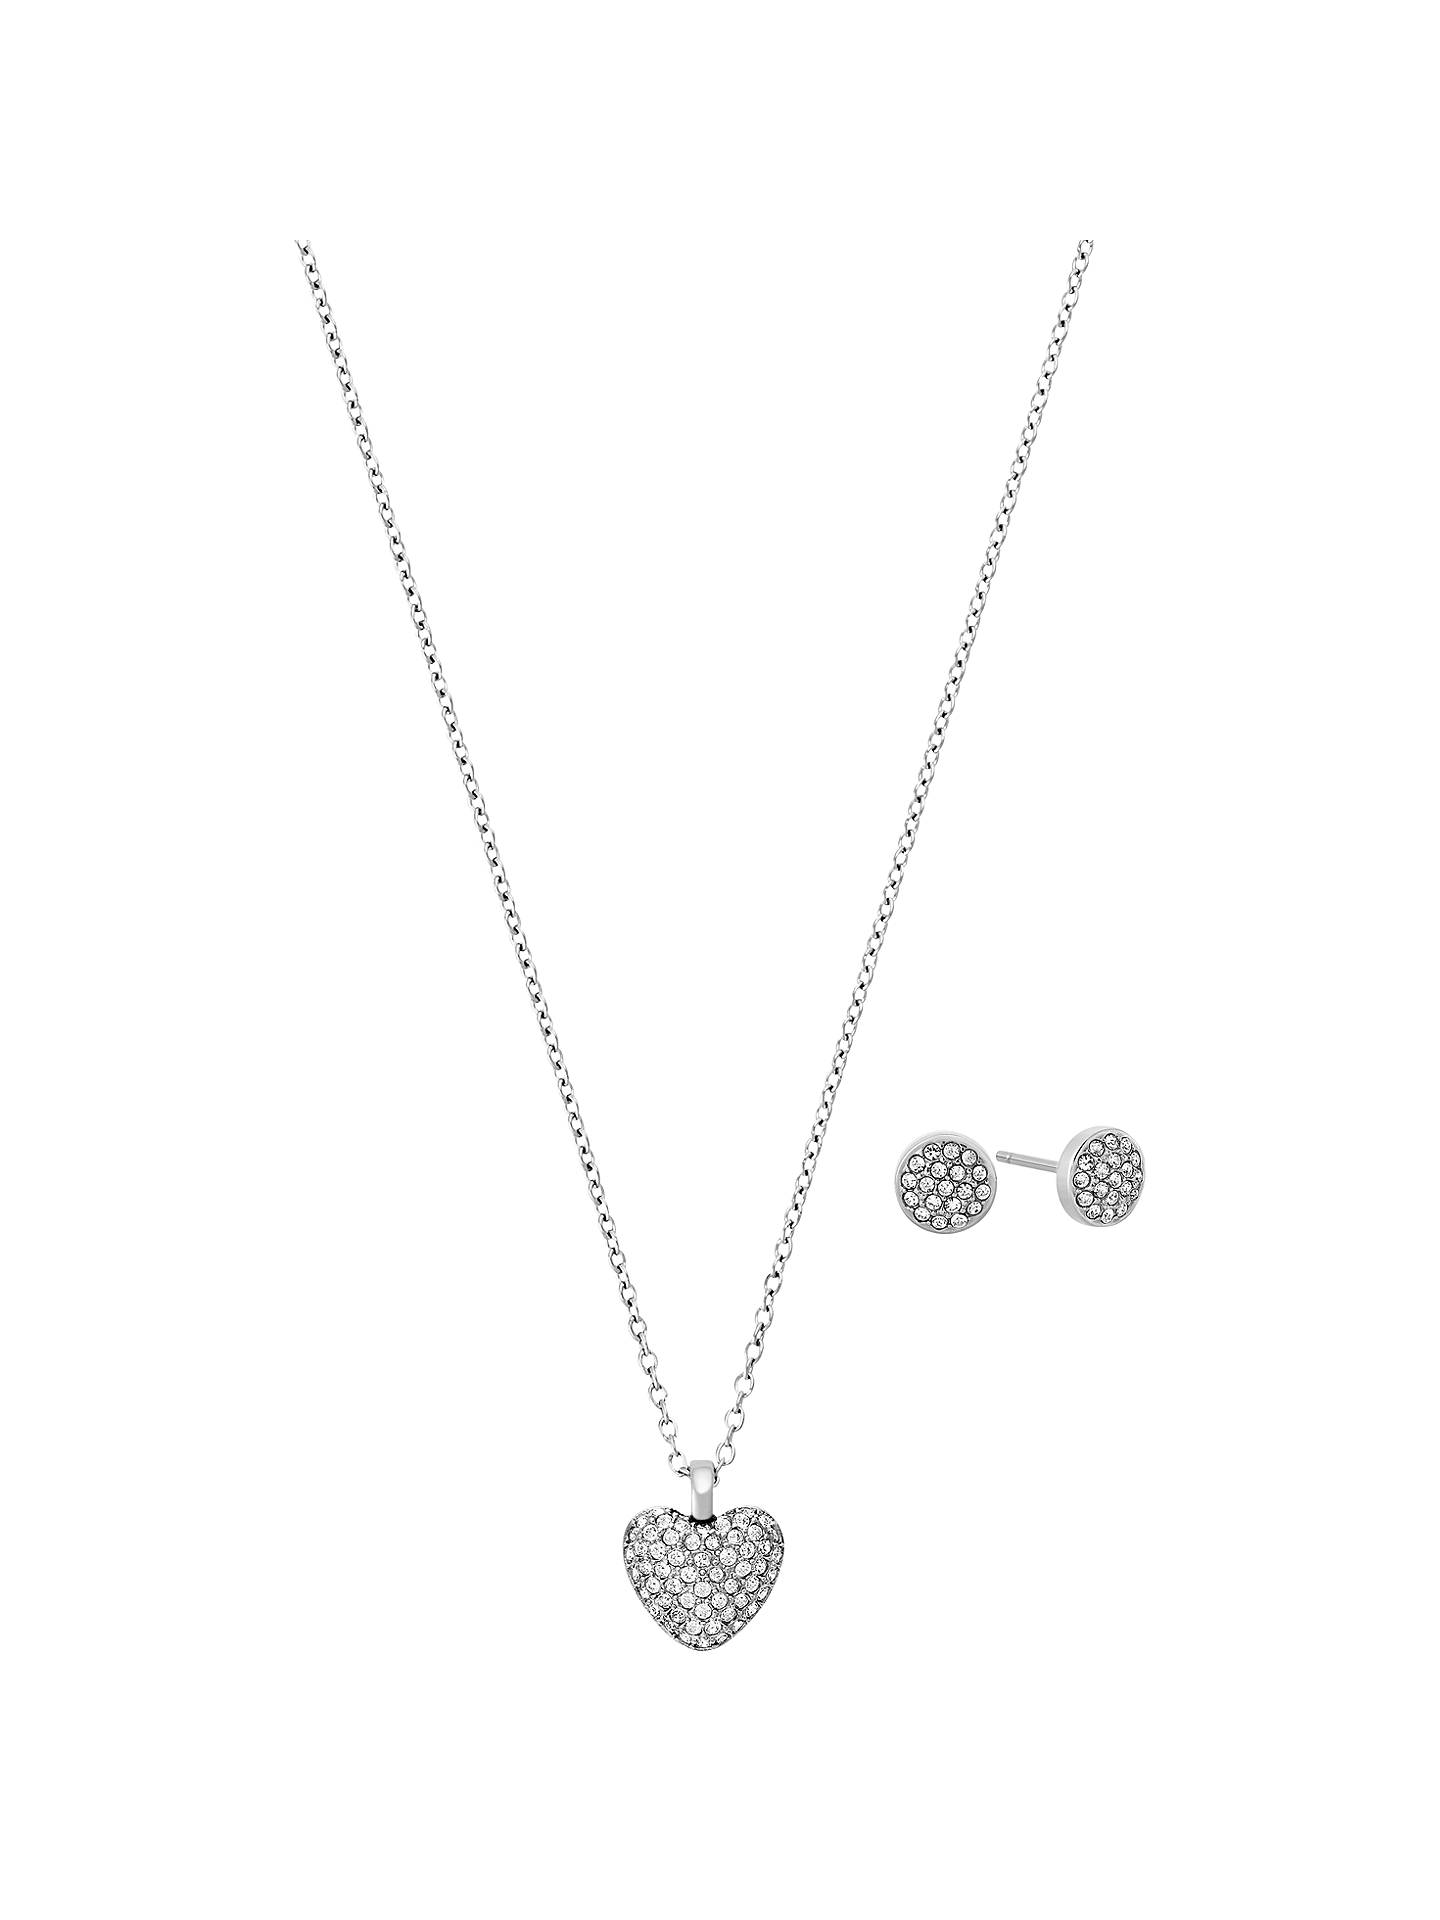 Michael Kors Heart Pendant Necklace And Round Stud Earrings Jewellery Gift Set Silver Online At